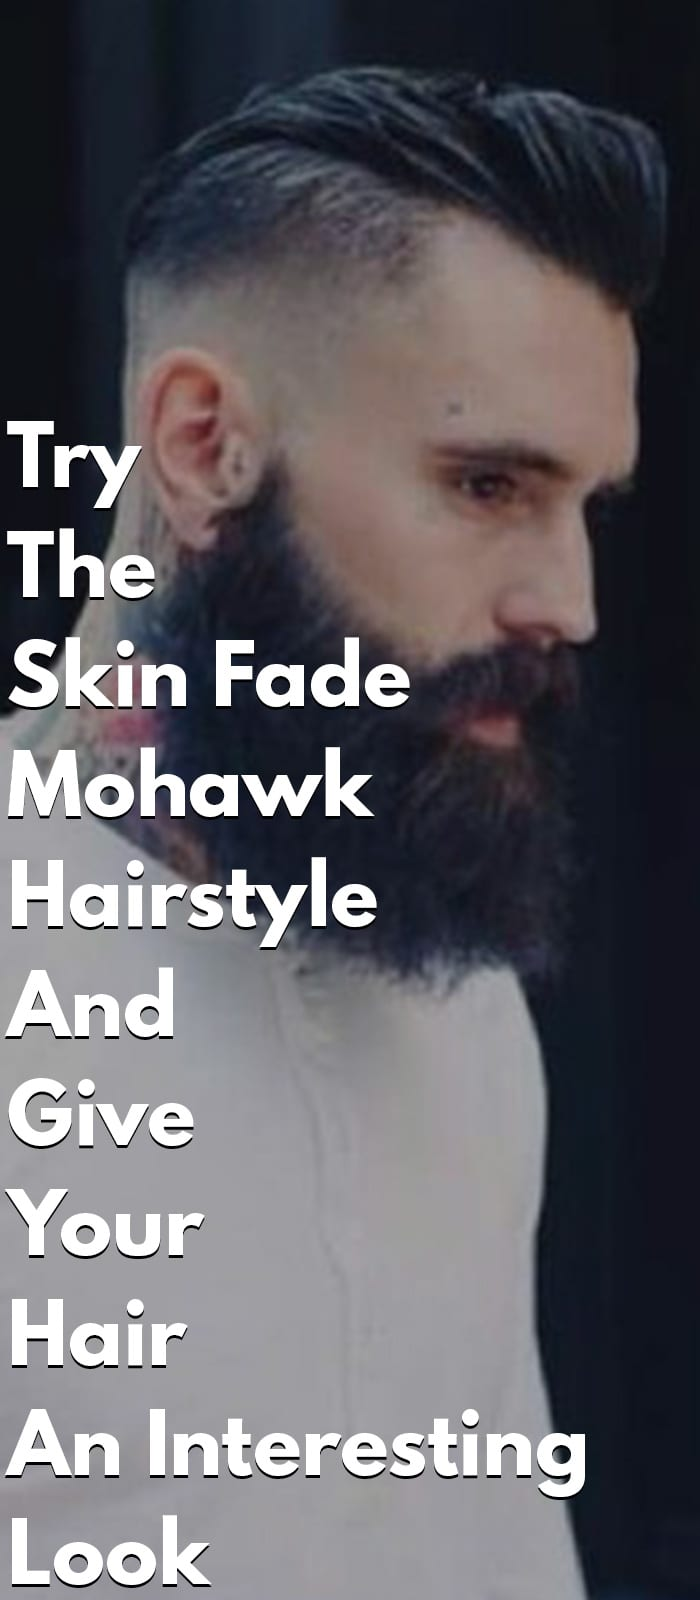 Try The Skin Fade Mohawk Hairstyle